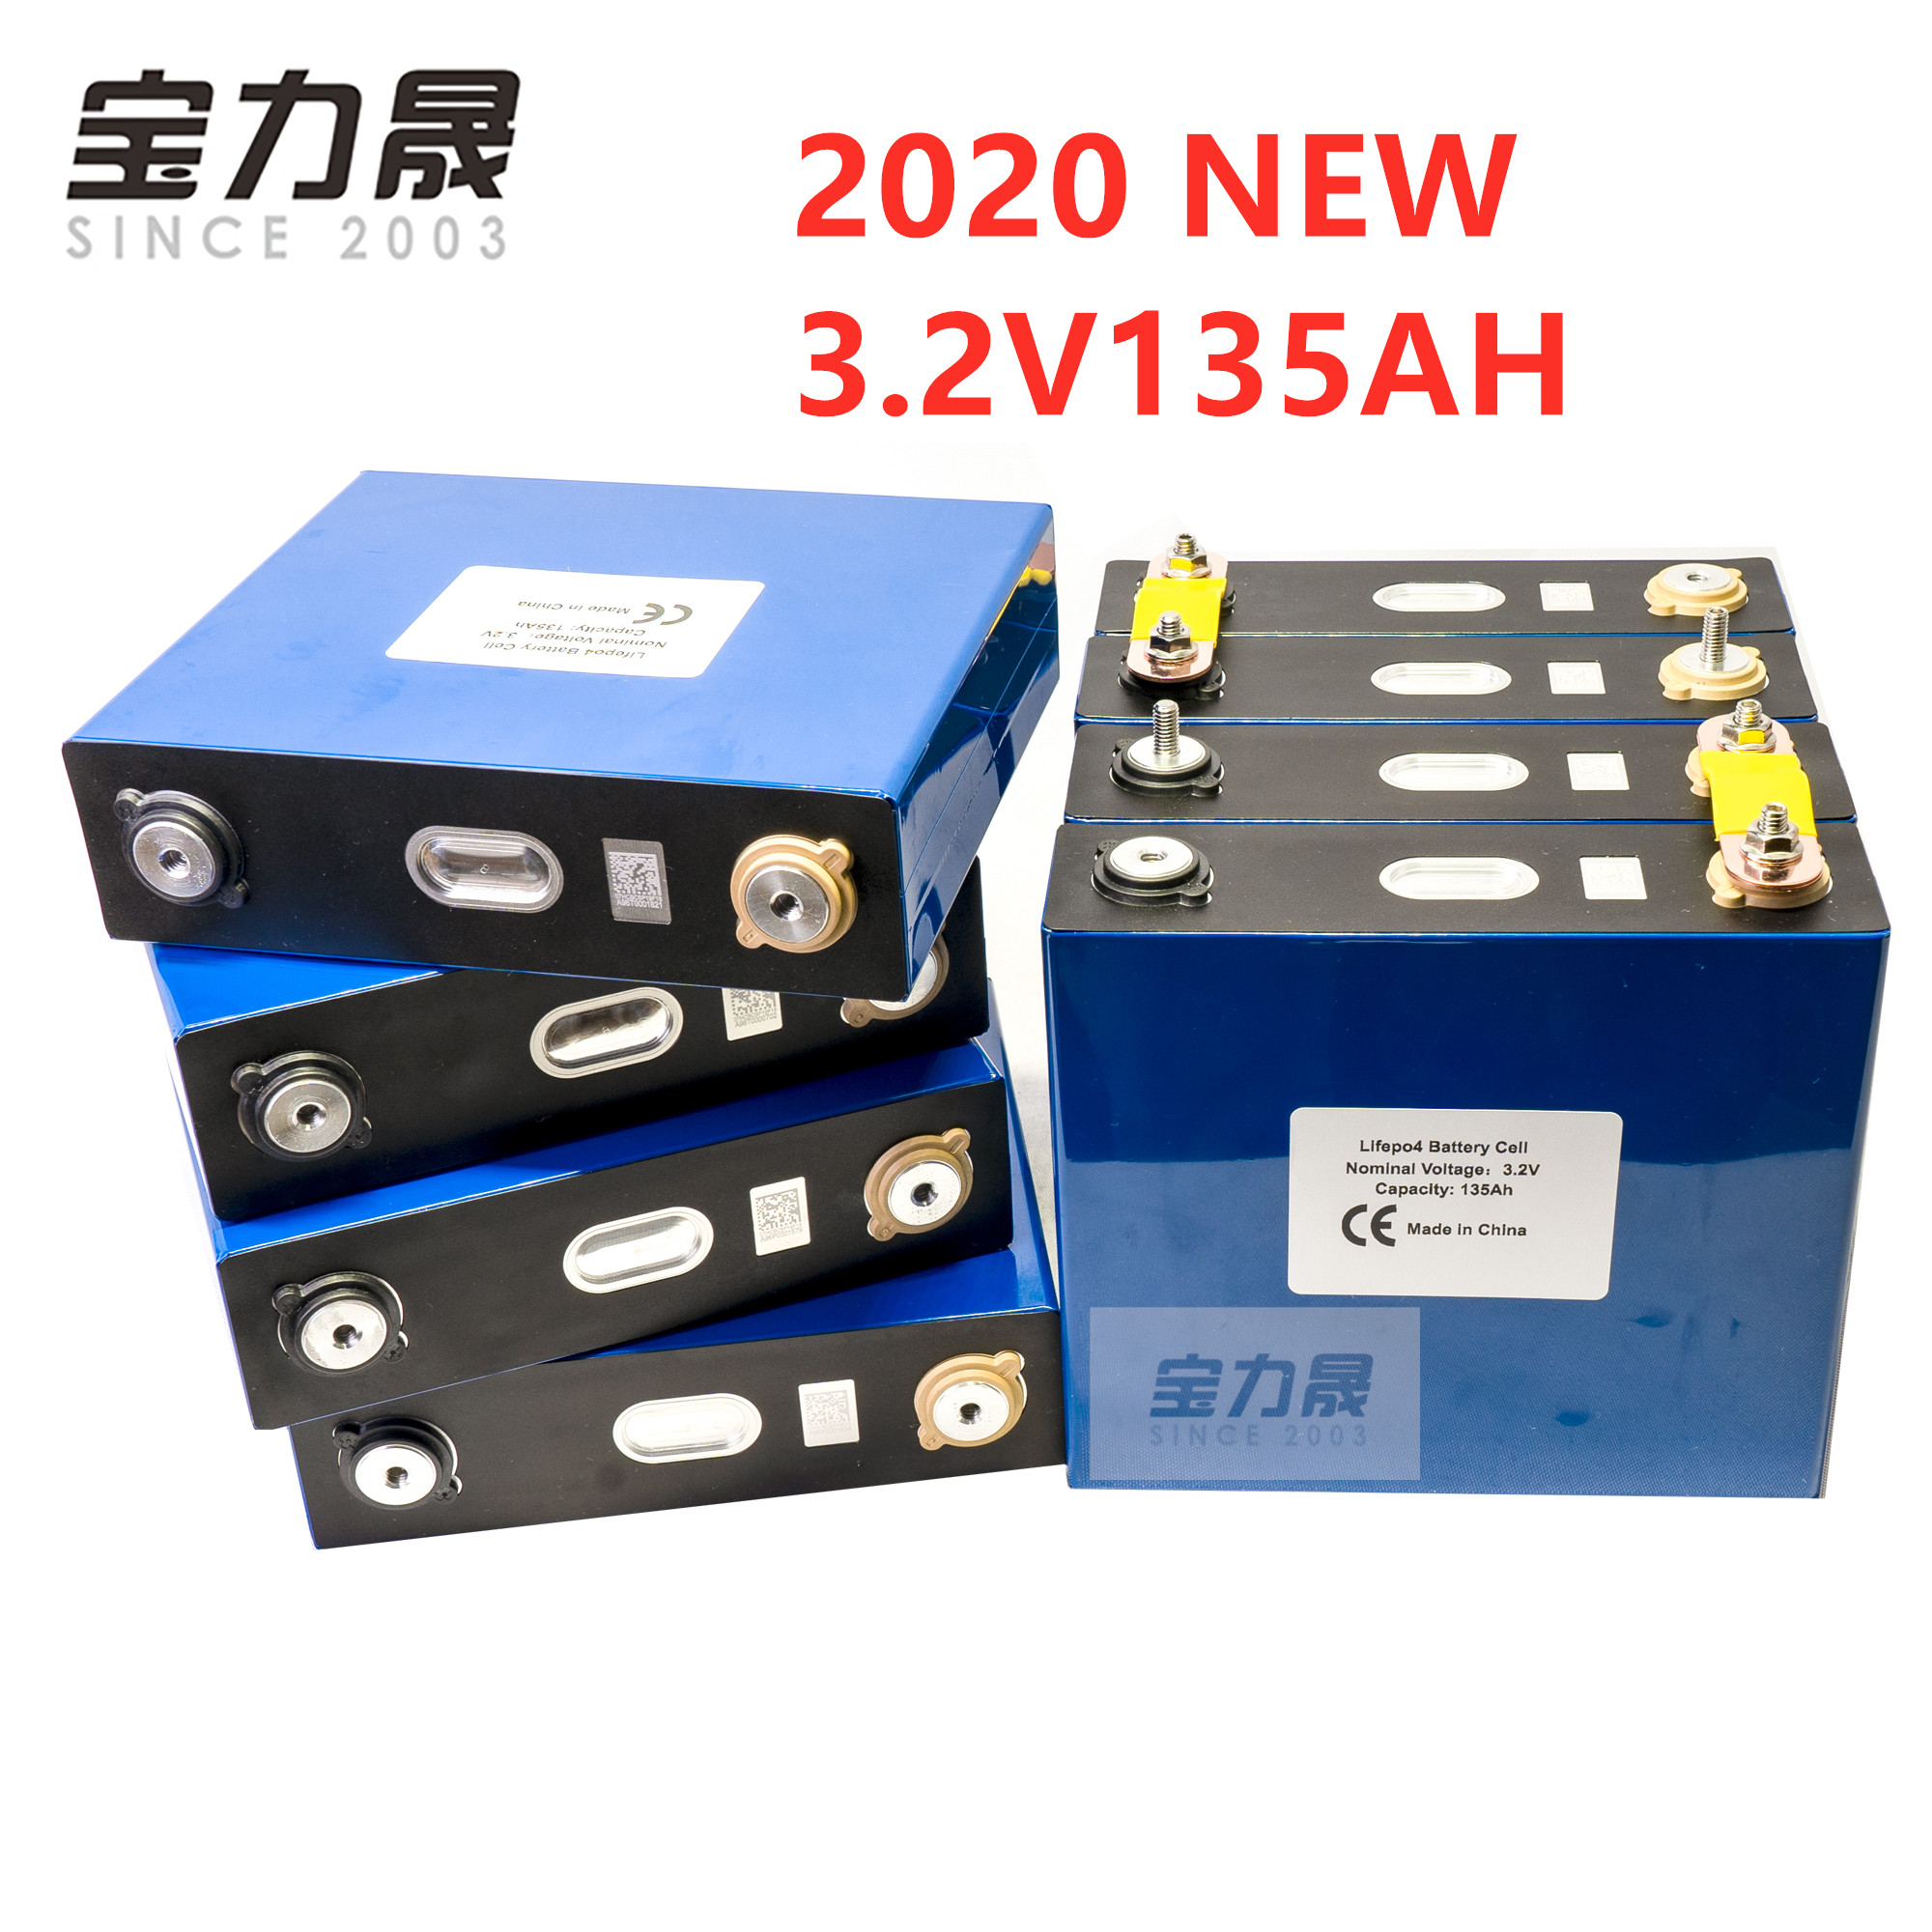 New 8PCS 3.2V 120Ah 135AH lifepo4 Rechargeable <font><b>Battery</b></font> Lithium Iron Phosphate Cell solar 24V <font><b>12V</b></font> cells not <font><b>150ah</b></font> EU US TAX FREE image